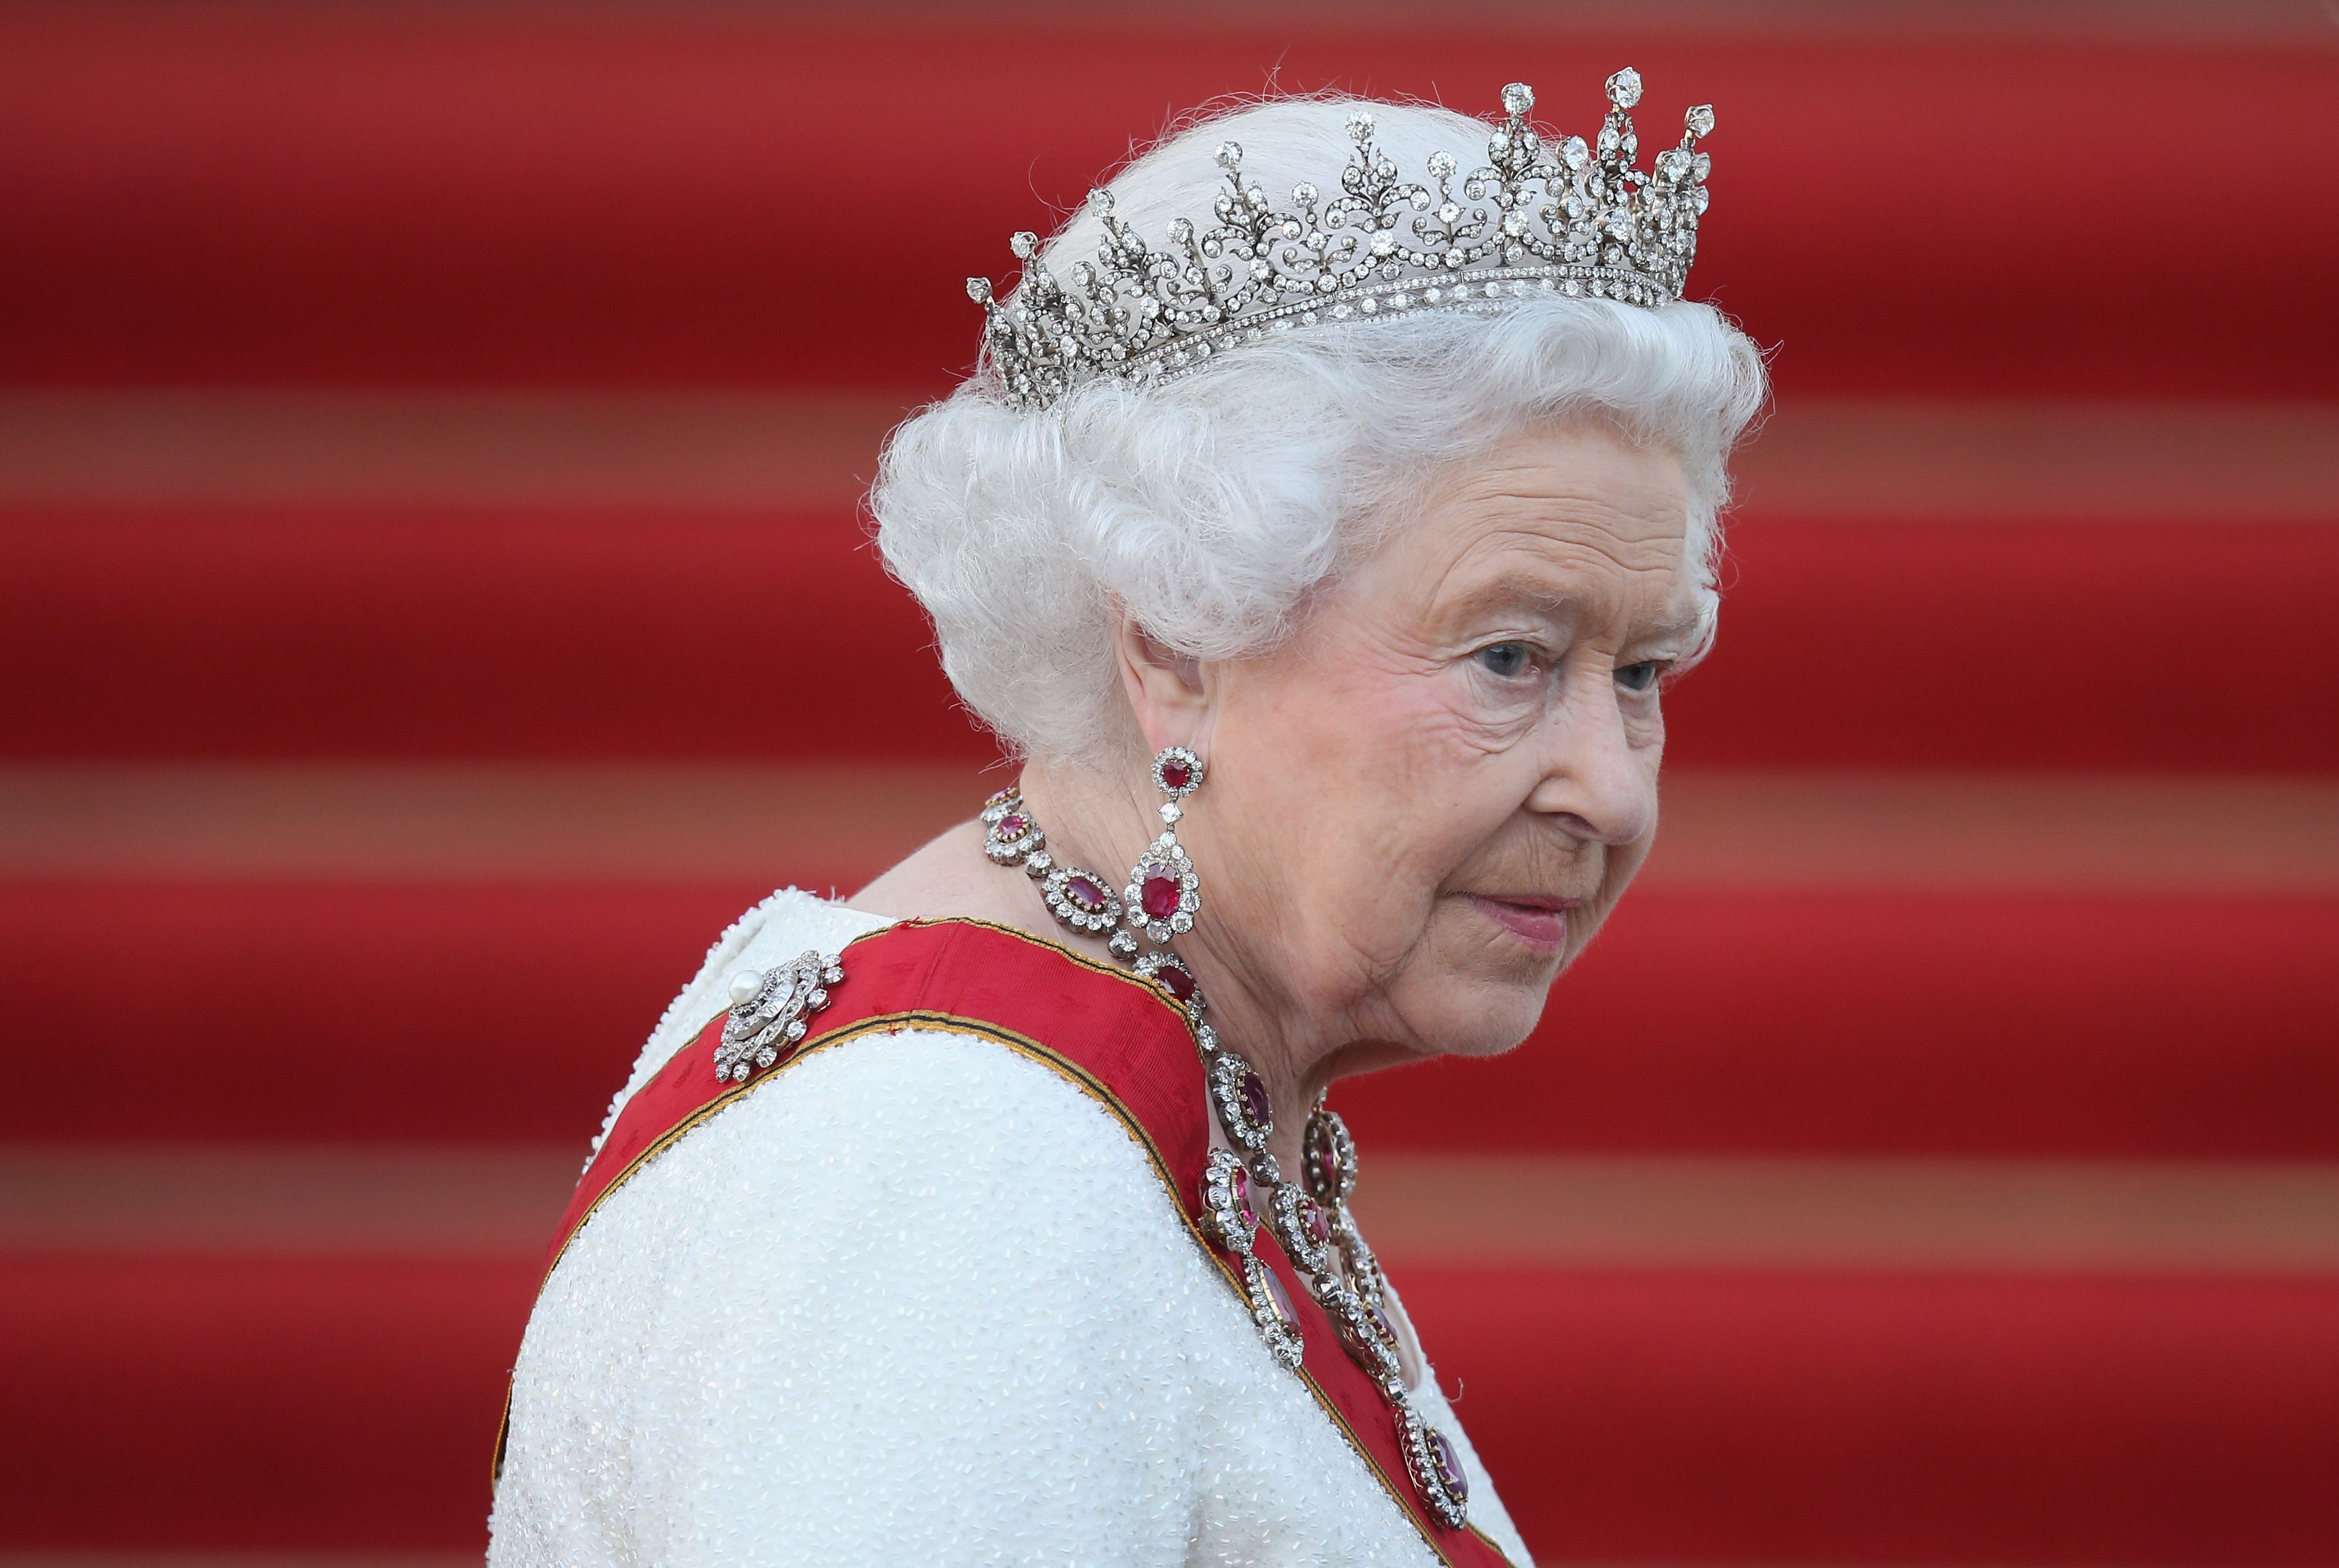 The Queens Christmas Speech 2021 The Queen Is Set To Talk About A Bumpy Year In Her Christmas Speech